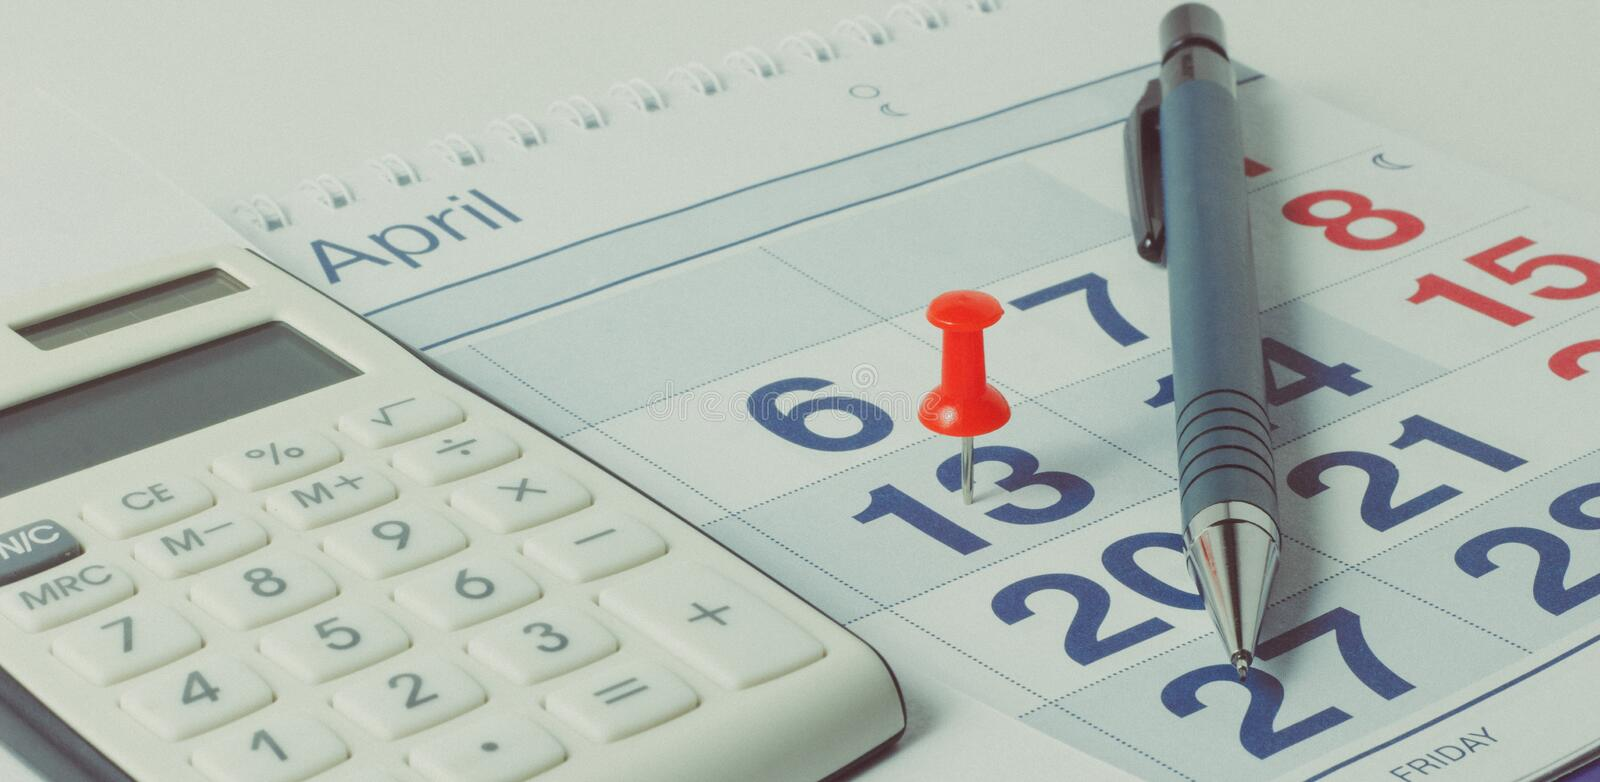 Calculator and pen on calendar background royalty free stock image